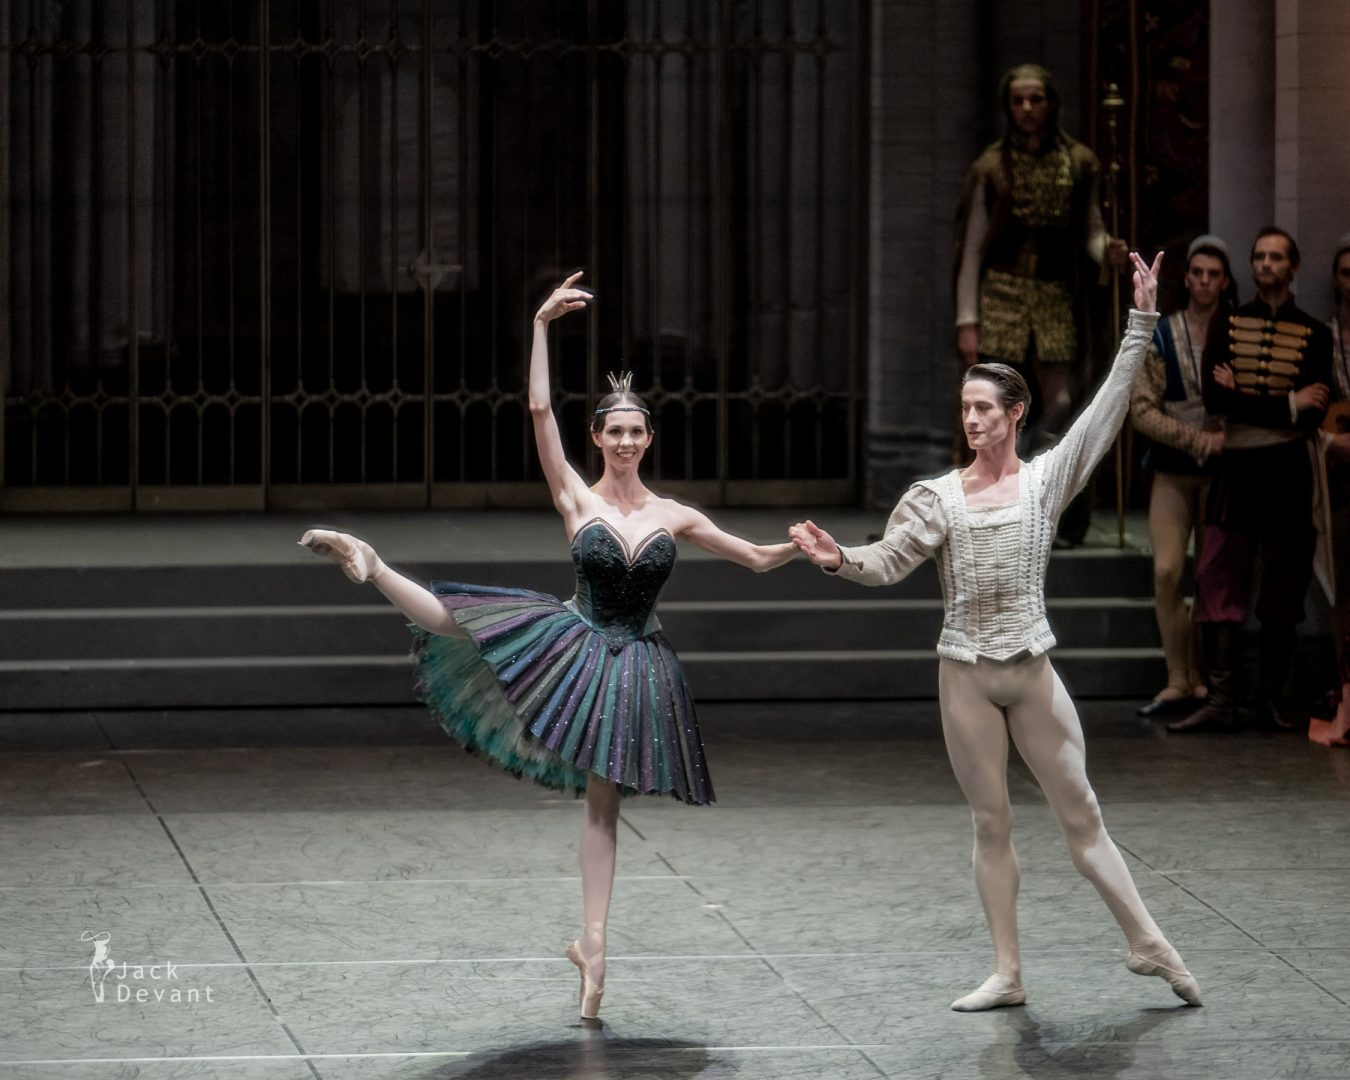 Viktorina Kapitonova and Alexander Jones in Swan Lake act 3 5